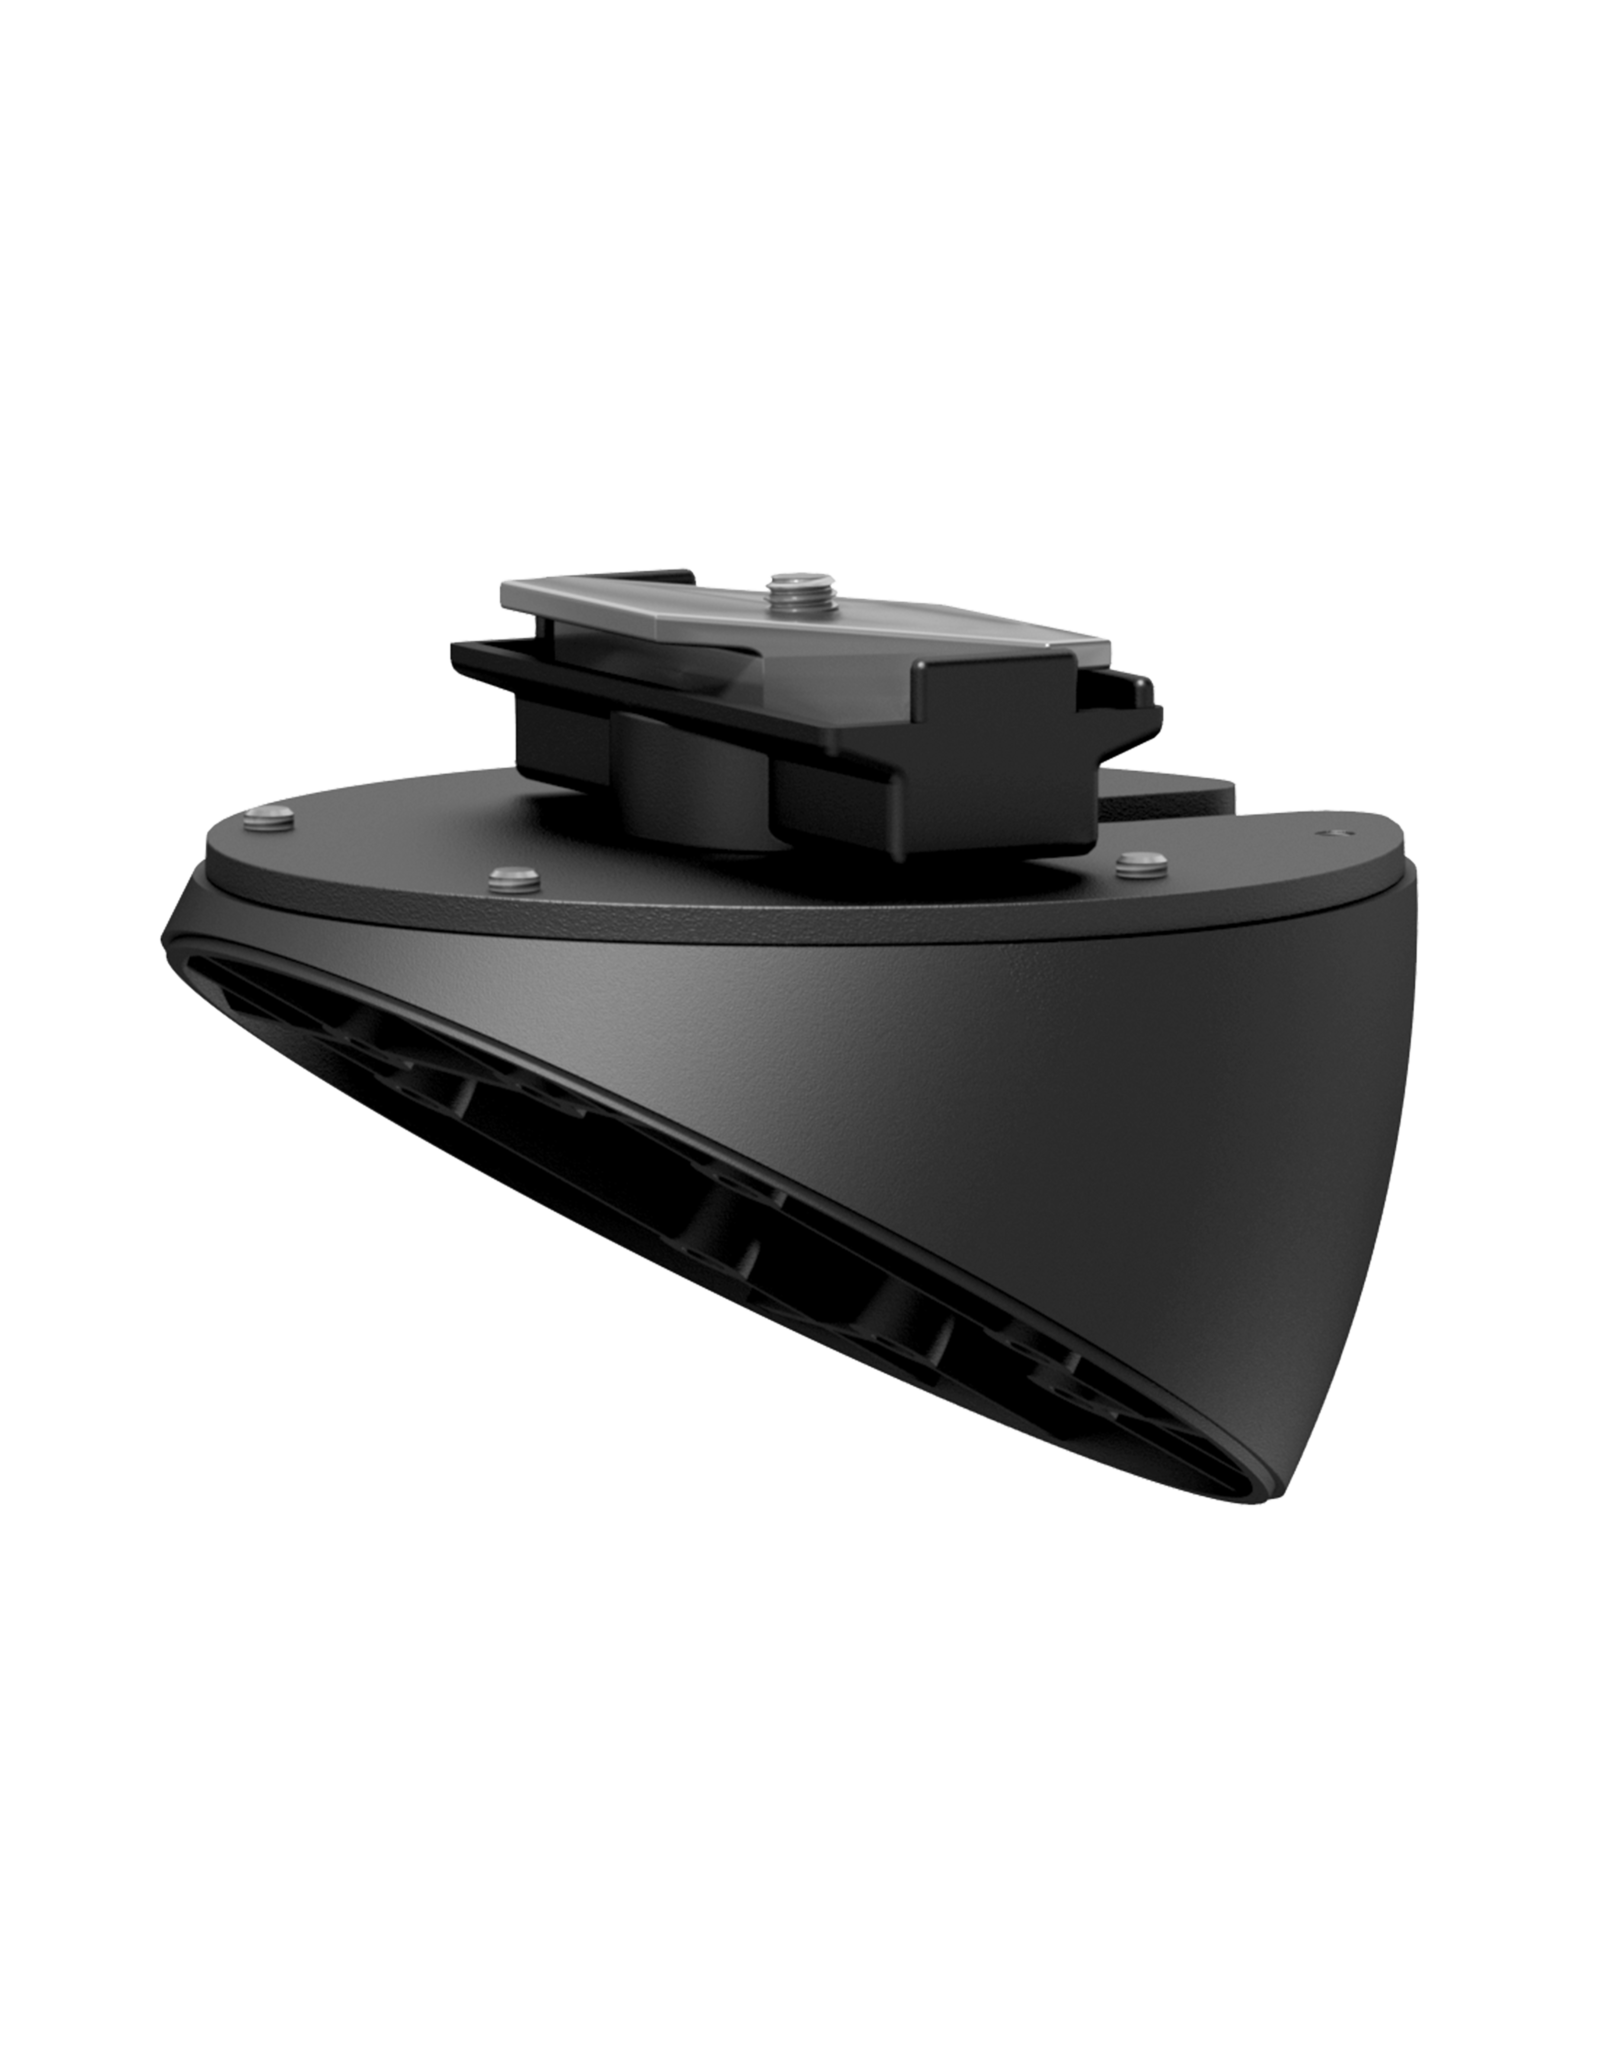 Audac Light track adapter mount for ATEO4 Black version